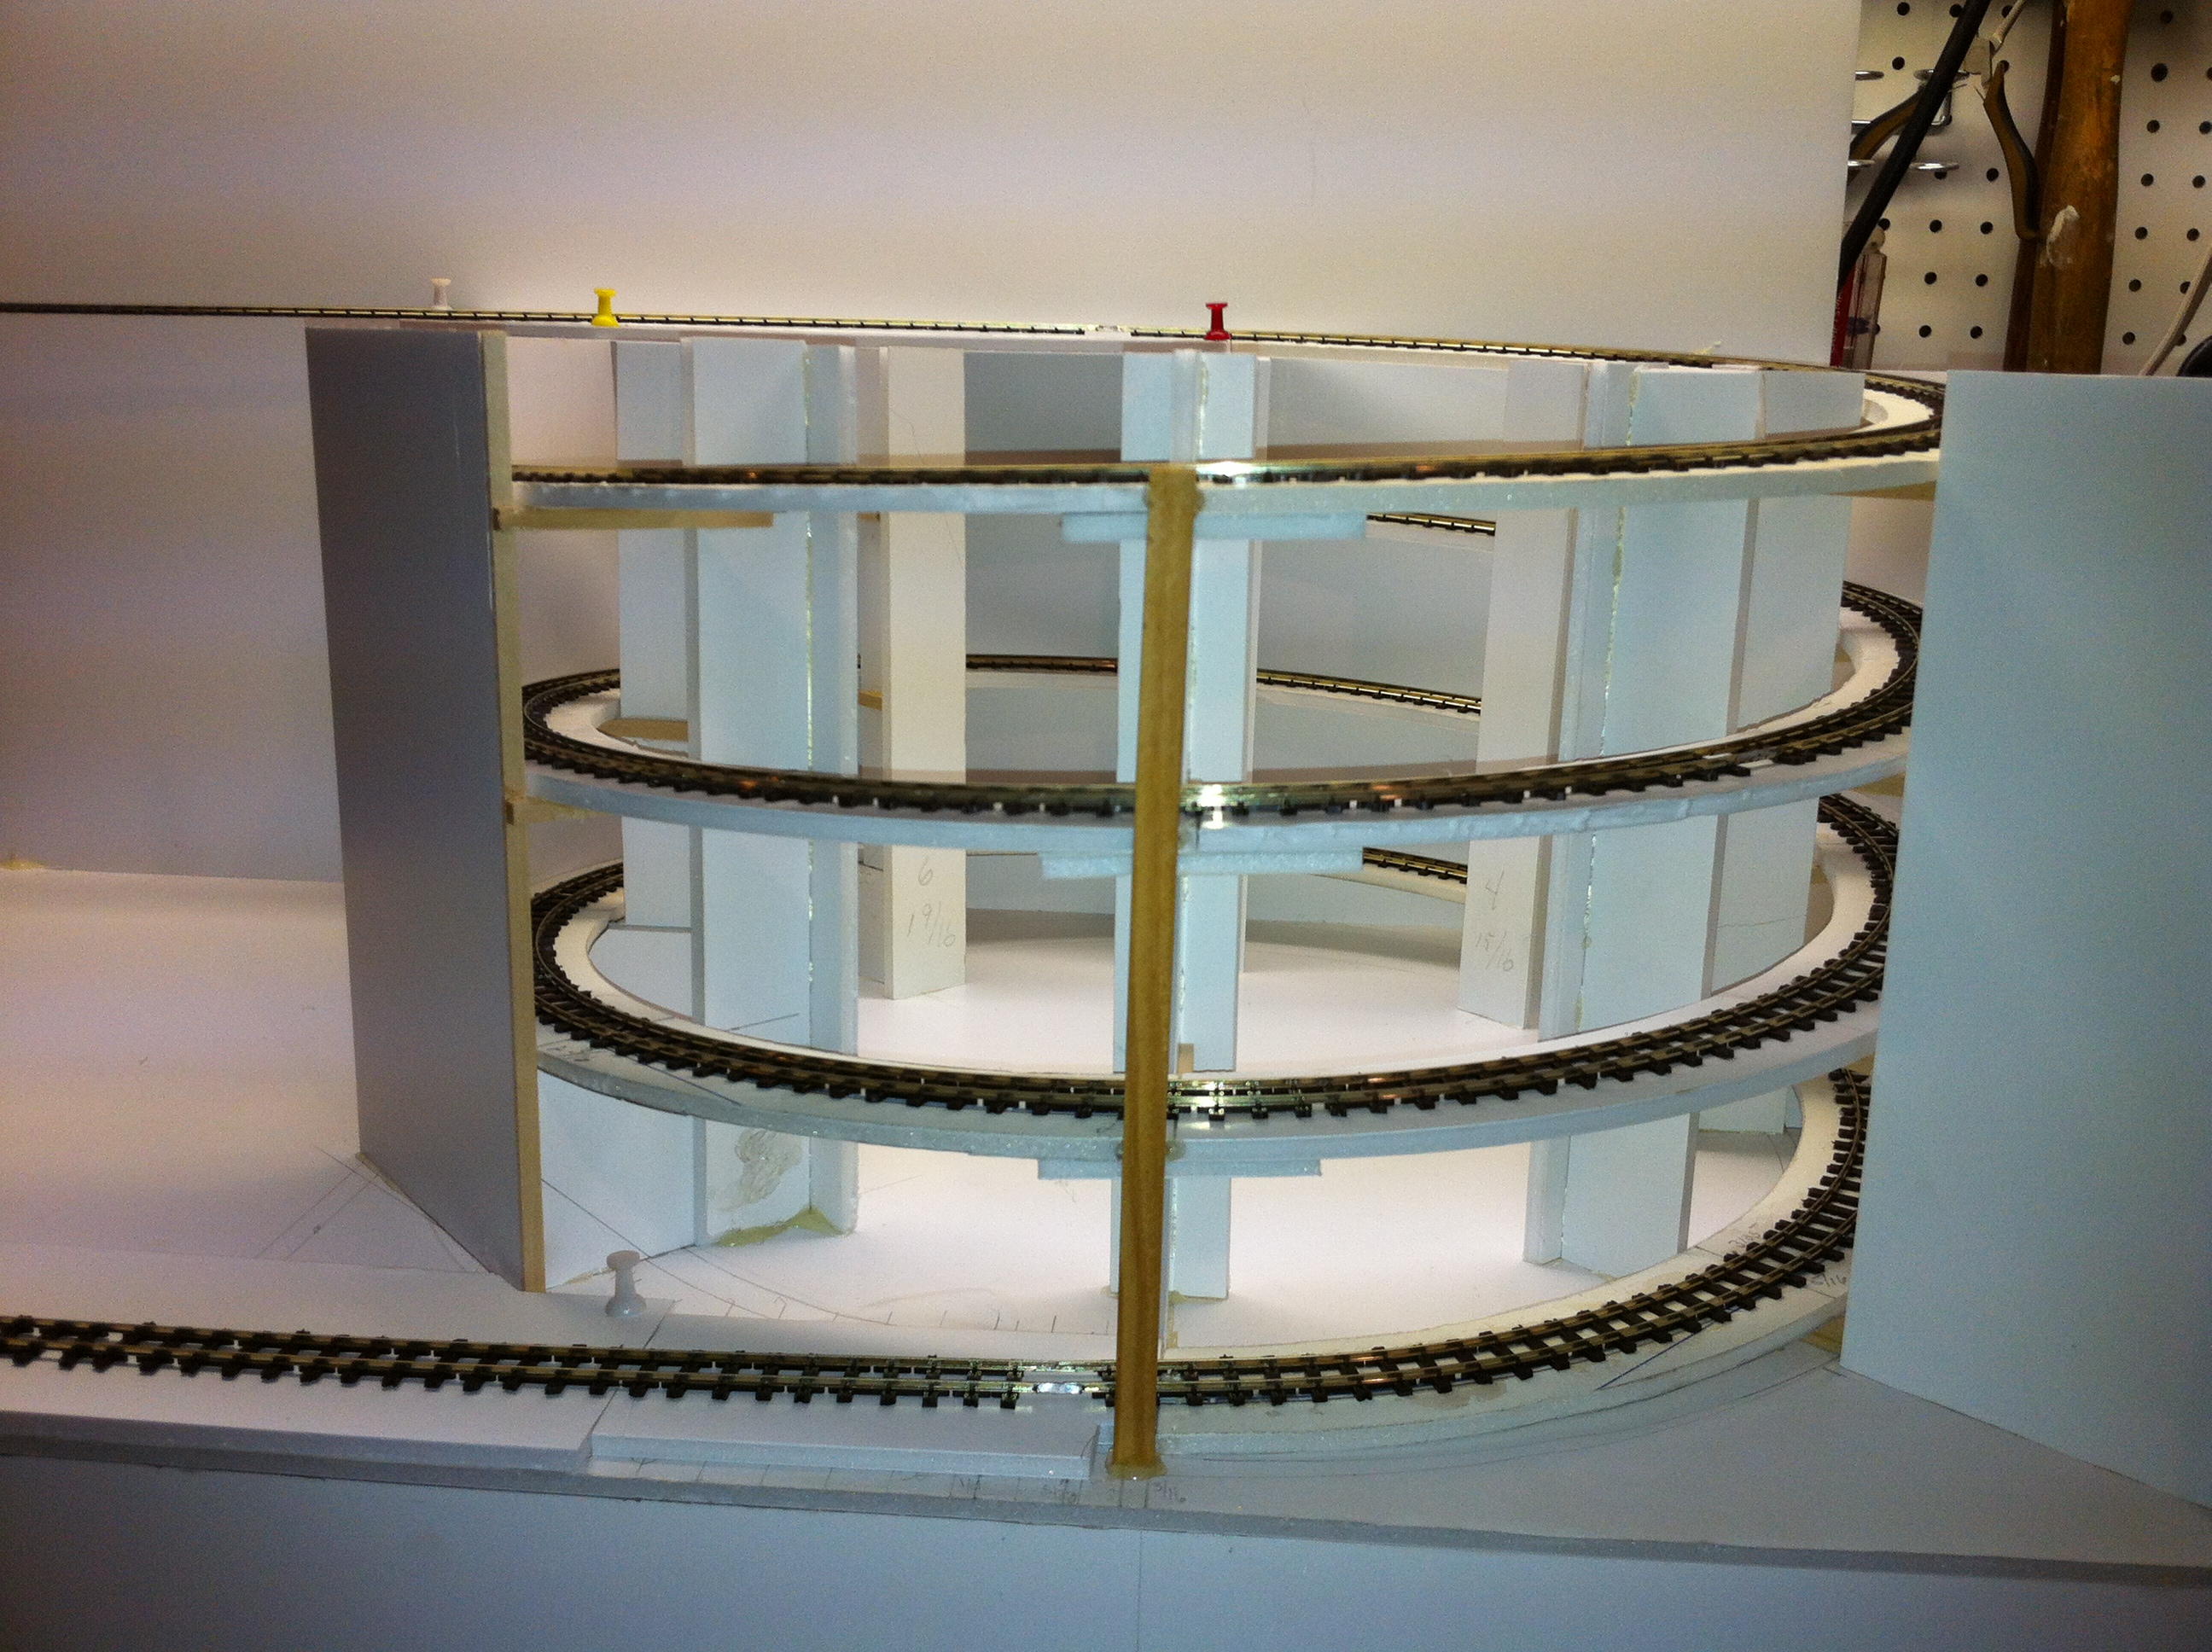 A Helix in Foam Core – Small Model Railroads